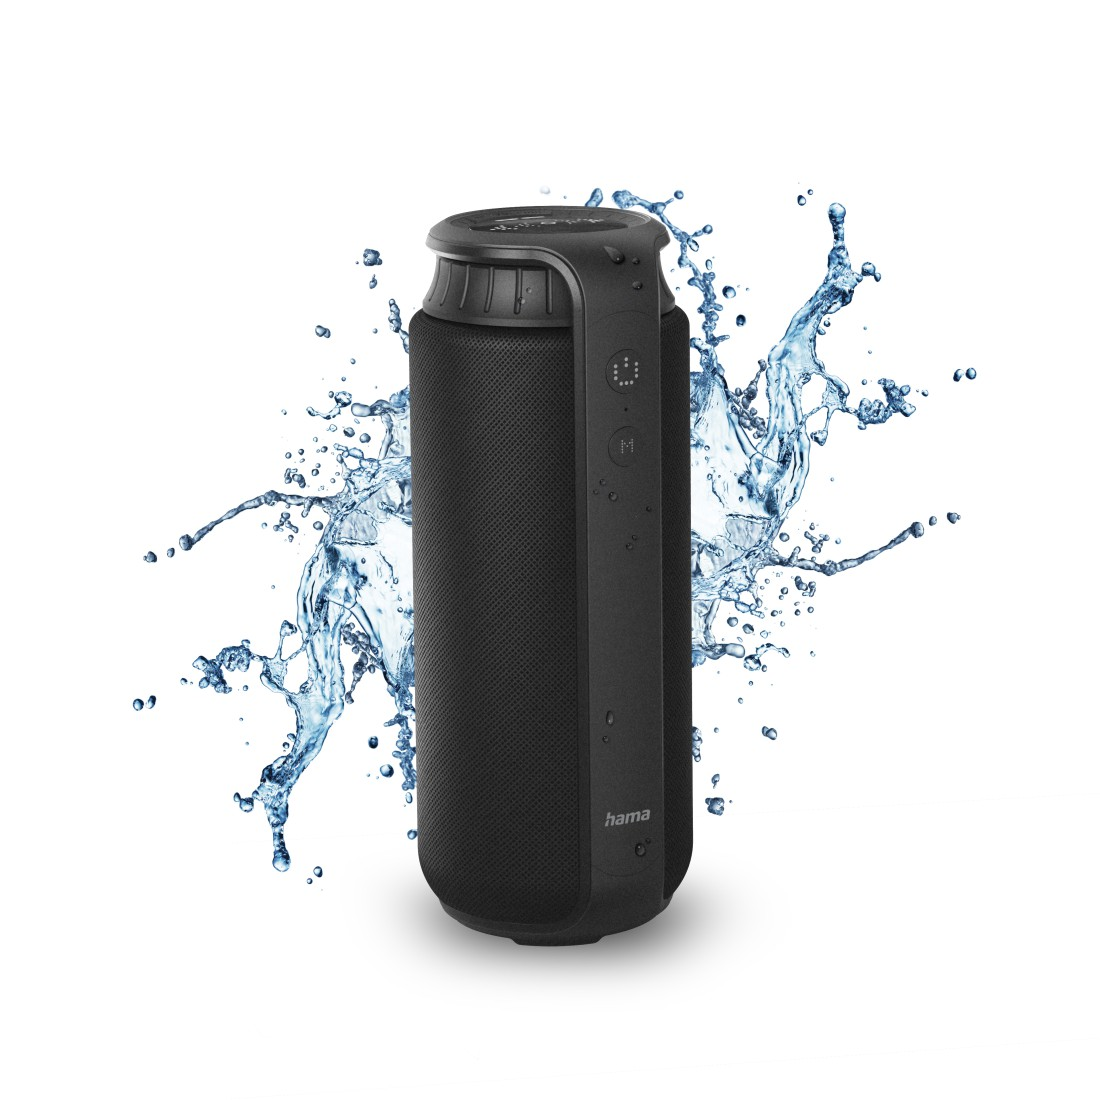 "awx3 High-Res Appliance 3 - Hama, Bluetooth® ""Pipe 2.0"" Loudspeaker, Waterproof, 24 W, black"